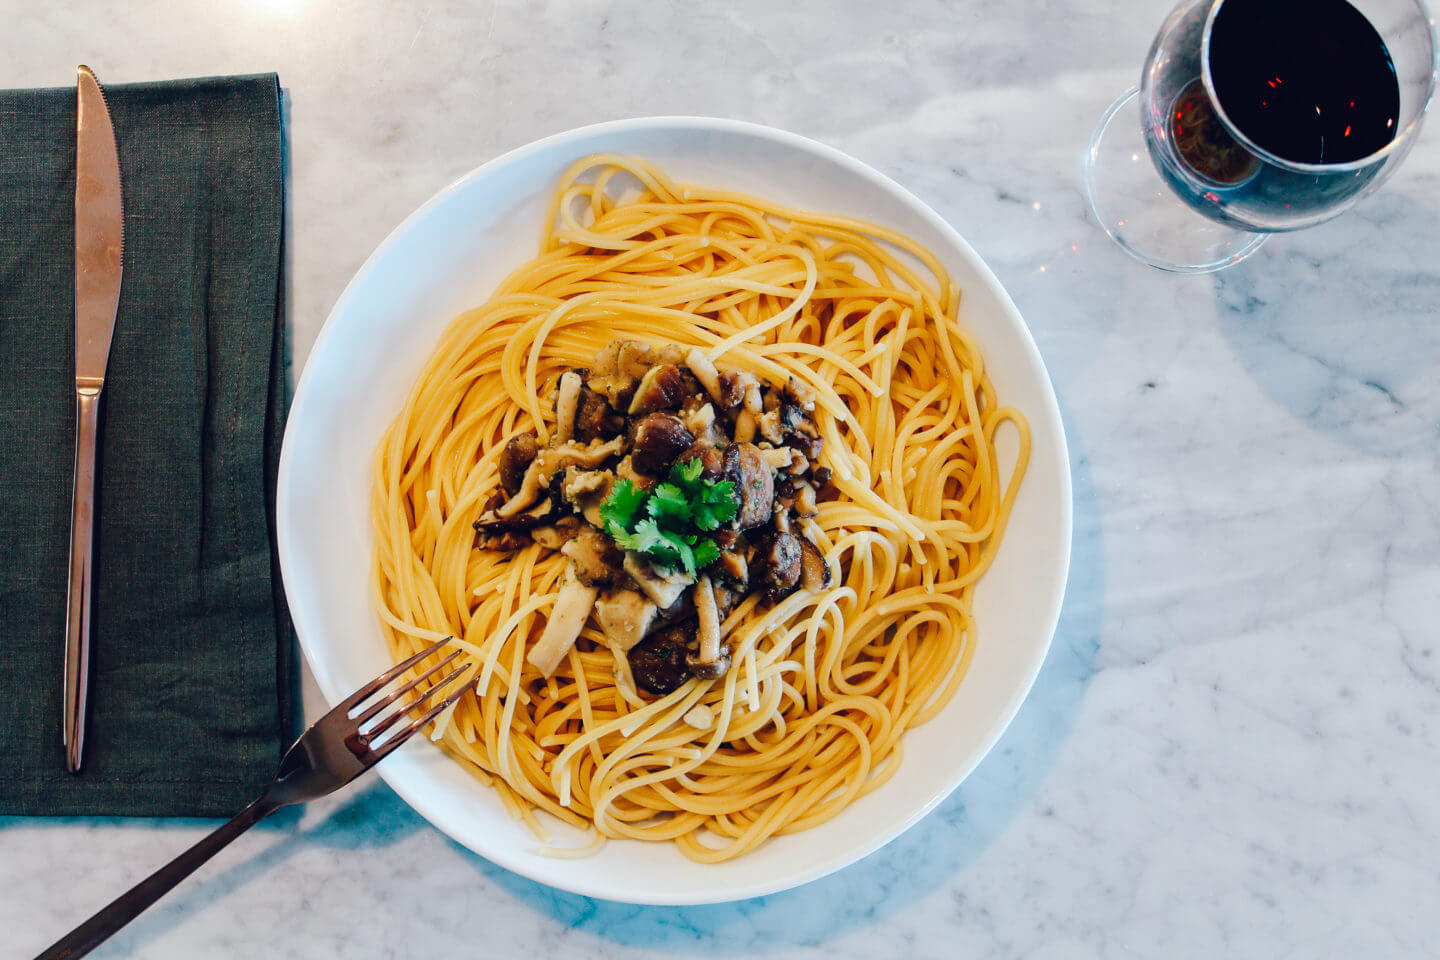 Sustainable and Vegan Lifestyle influencer shares a delicious and healthy pasta dish!!